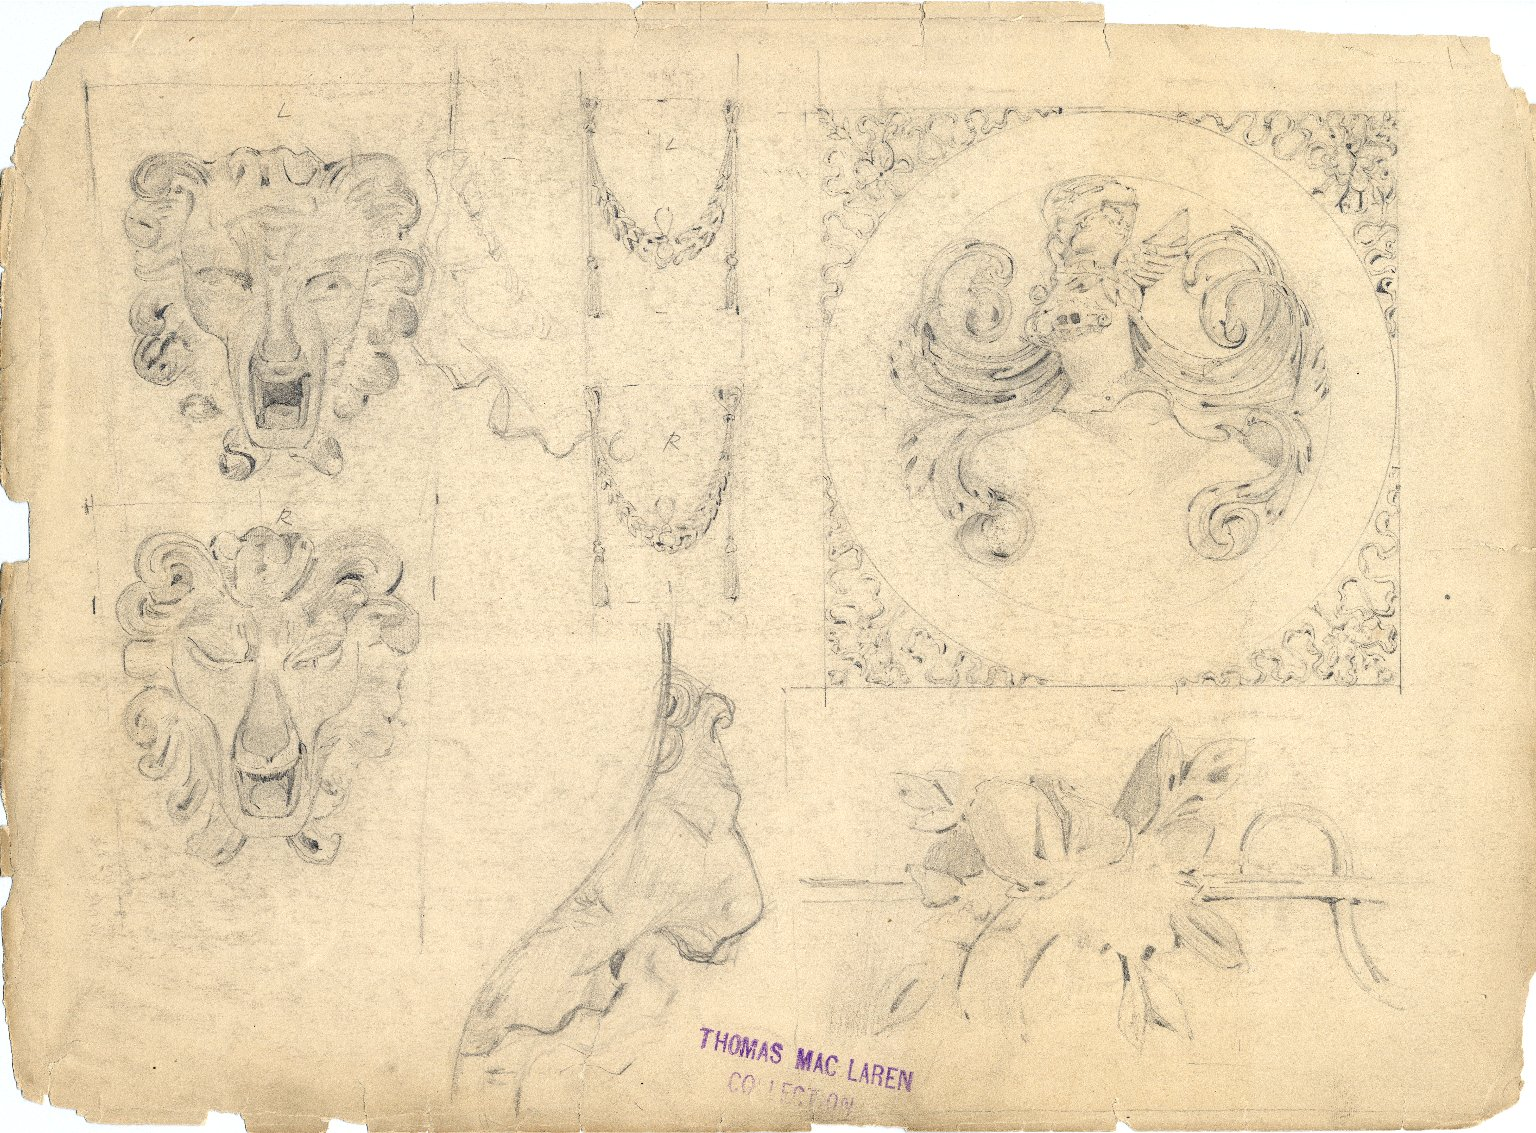 Flowers, coats of arms, and lionheads designs from Monument of the Count de Borgnival